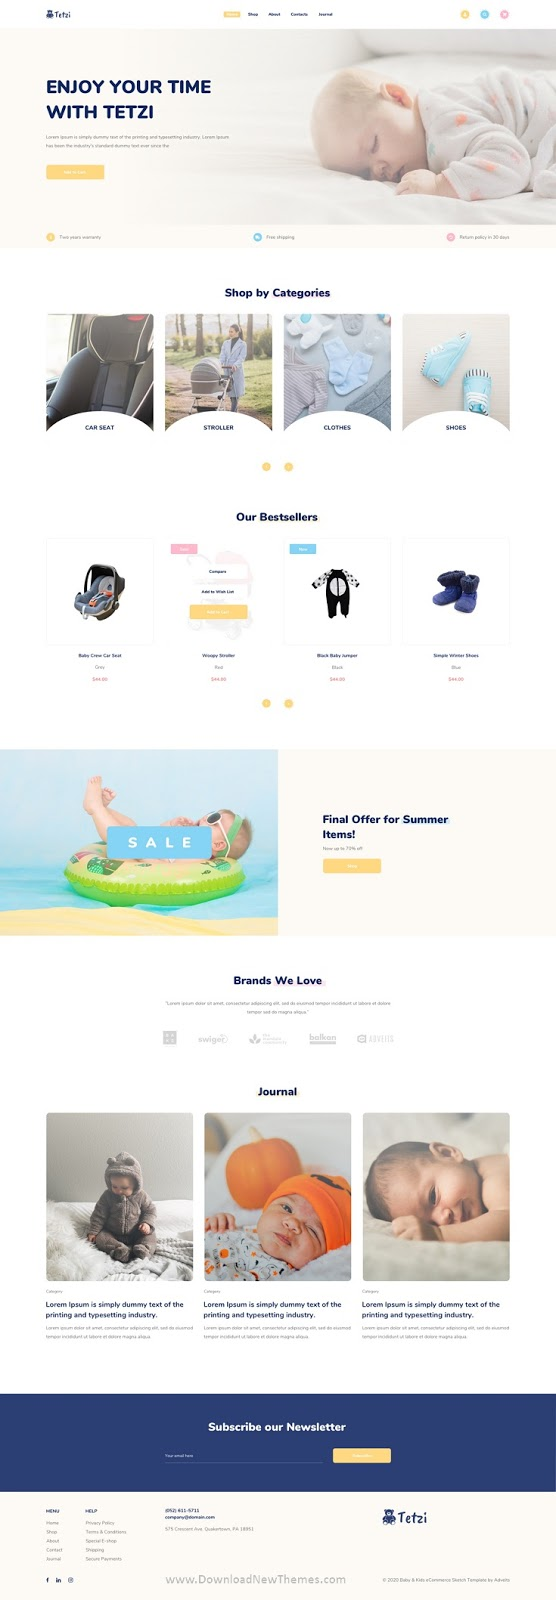 Baby & Kids eCommerce Adobe XD Template